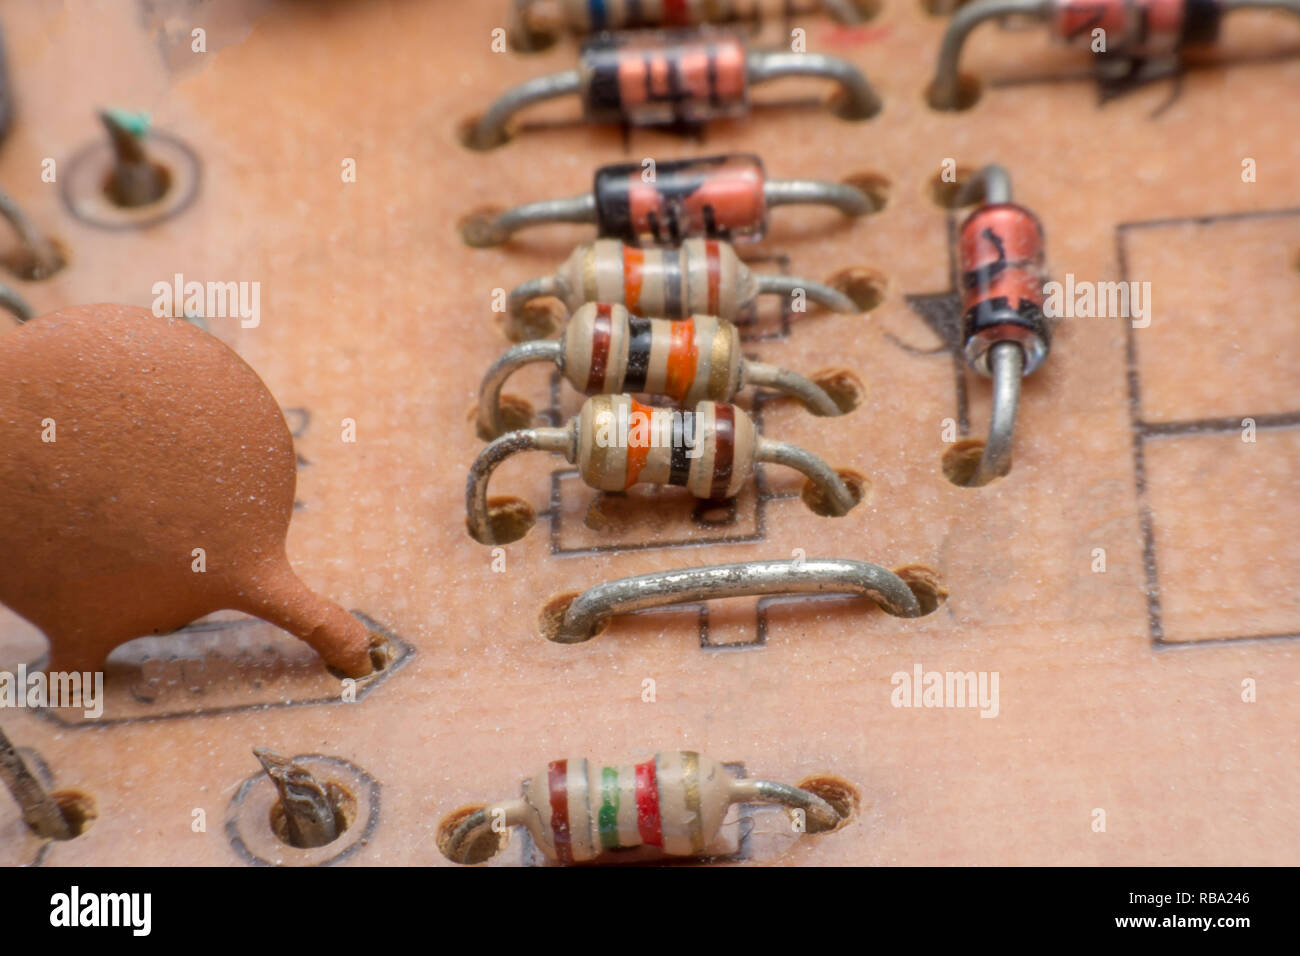 Close up electronic hardware Resistor and condensers assembly on the circuit board - Stock Image